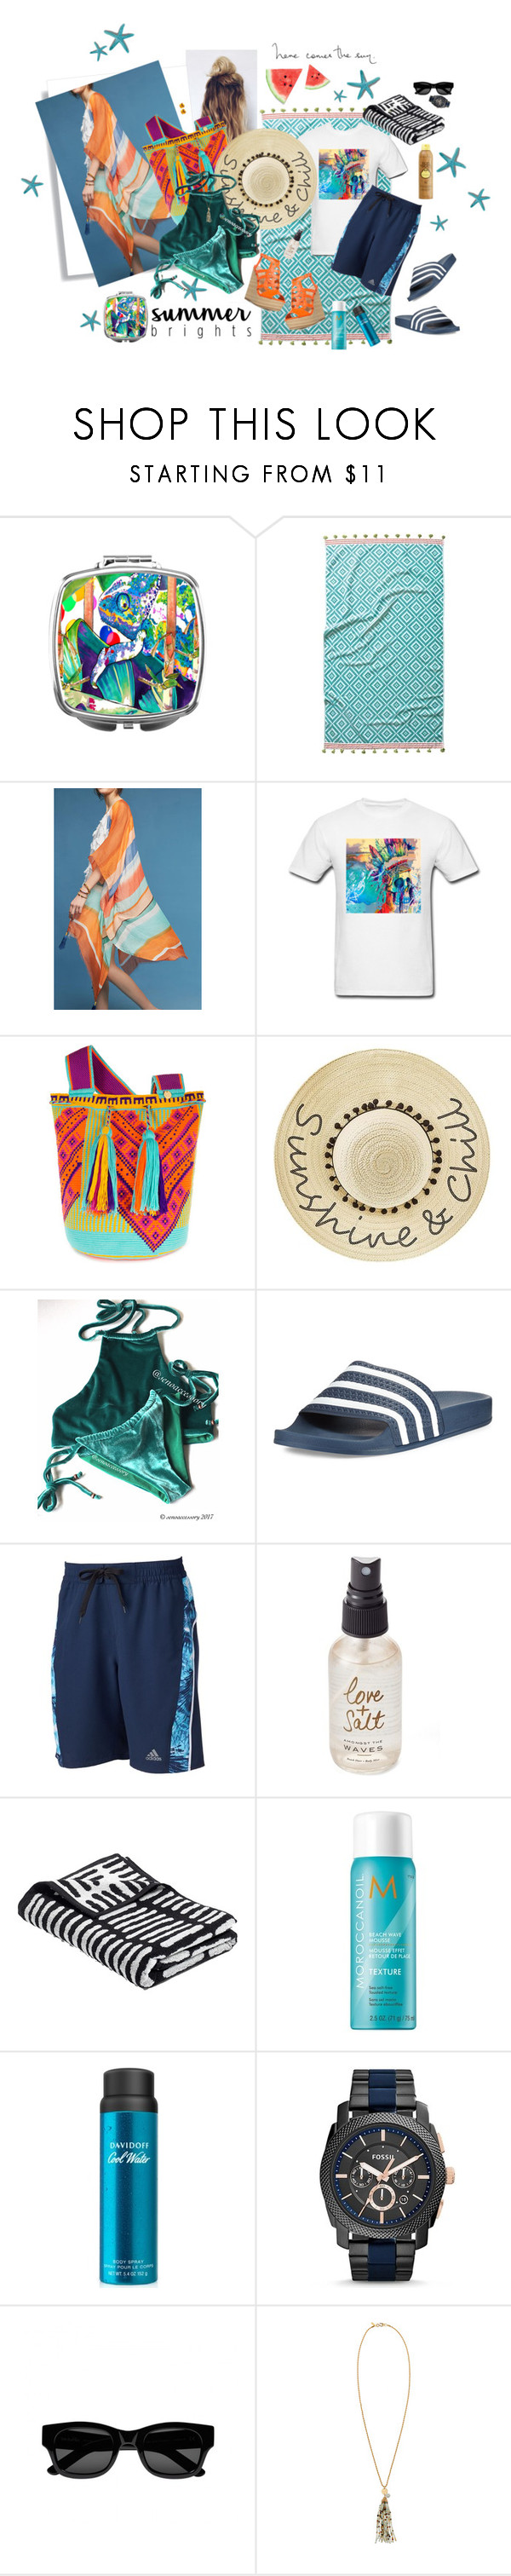 """Ready For Summer"" by cheesyxshirleyxo ❤ liked on Polyvore featuring John Robshaw, Subtle Luxury, Castellano Ethnic Origins, Betsey Johnson, adidas, Olivine, Moroccanoil, Davidoff, FOSSIL and Sun Buddies"